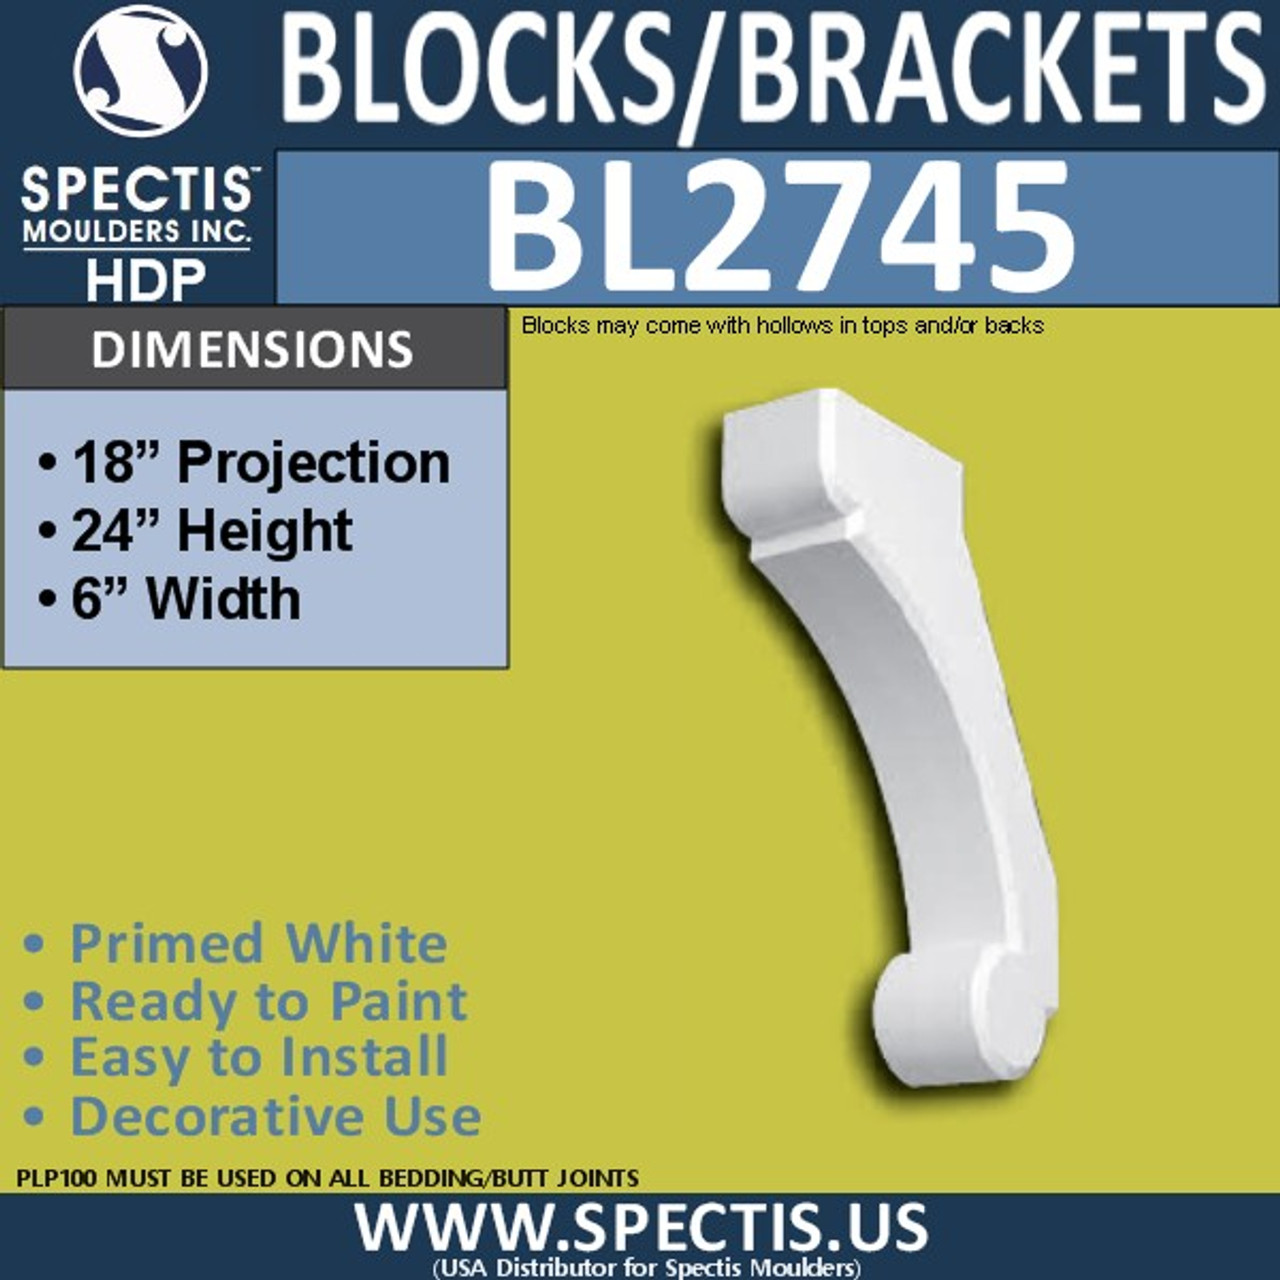 "BL2745 Eave Block or Bracket 6""W x 24""H x 18"" P"